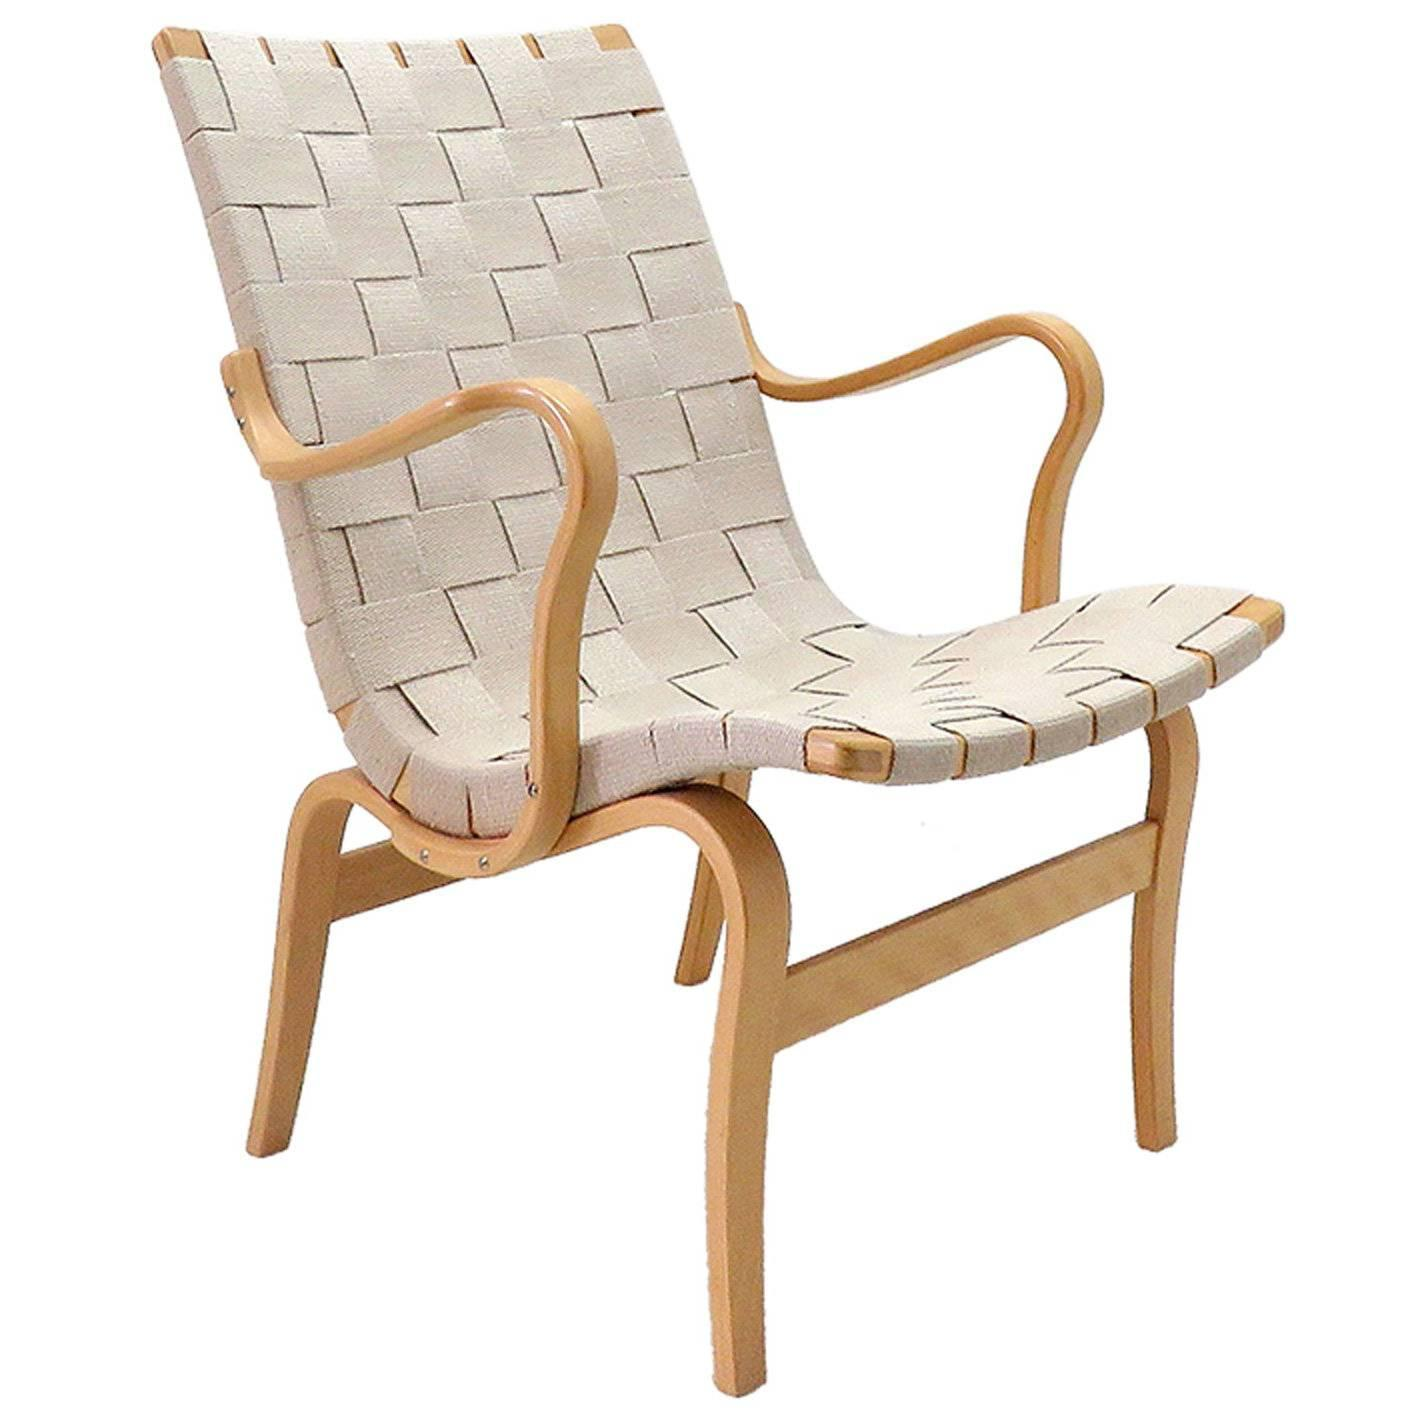 Merveilleux Bruno Mathsson For DUX U0027Evau0027 Armchair At 1stdibs